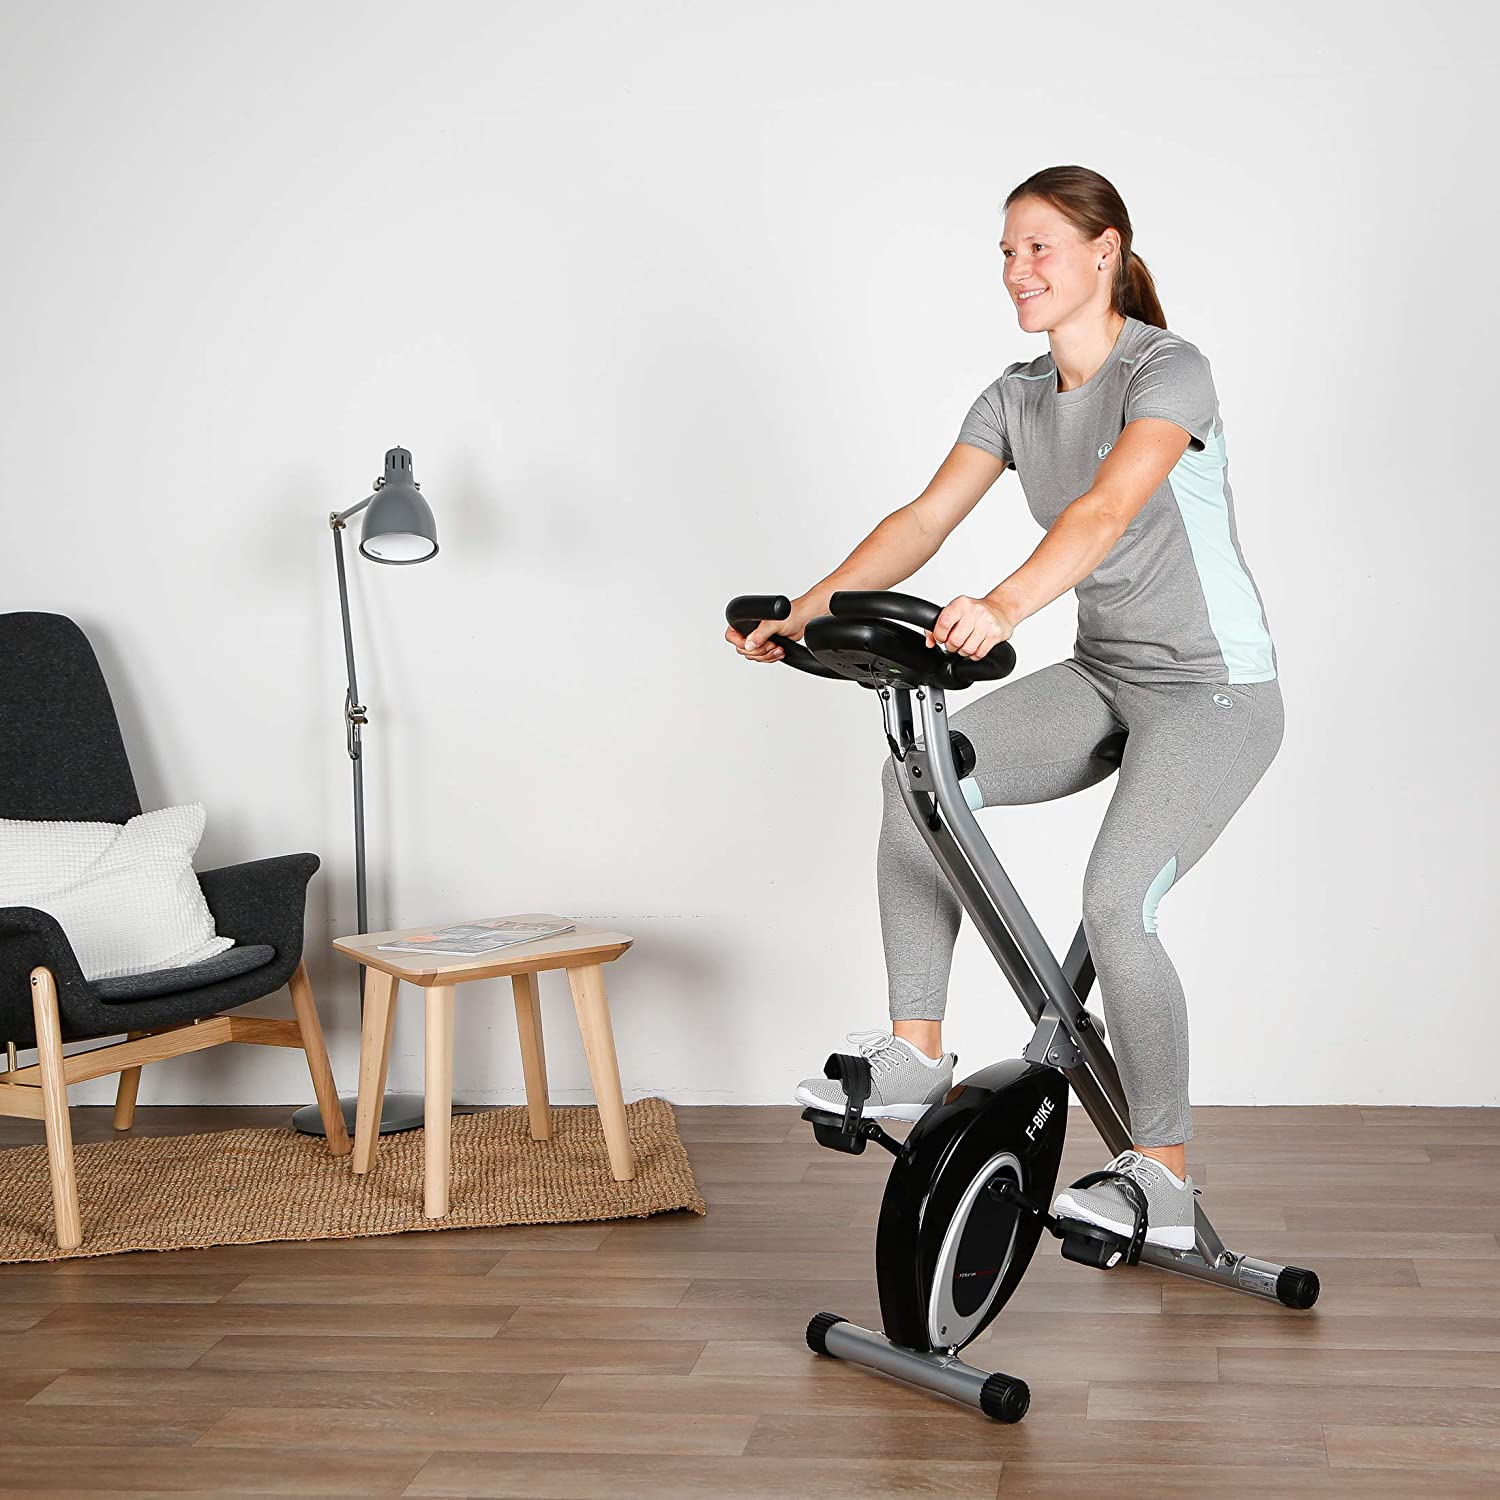 Best Folding Exercise Bike UK